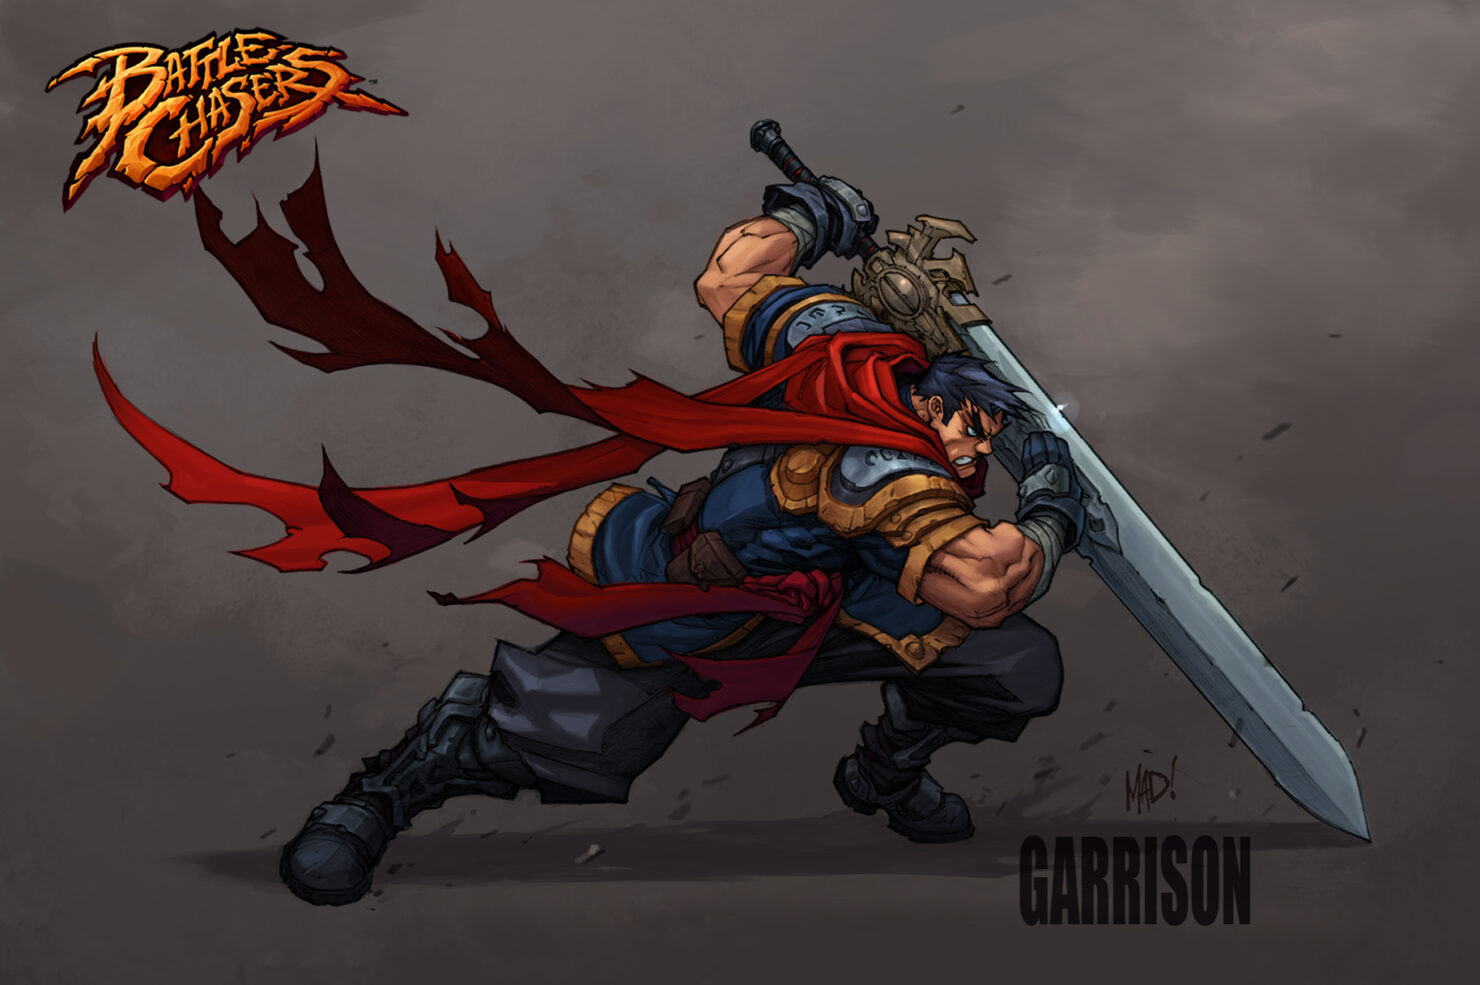 battle-chasers-2